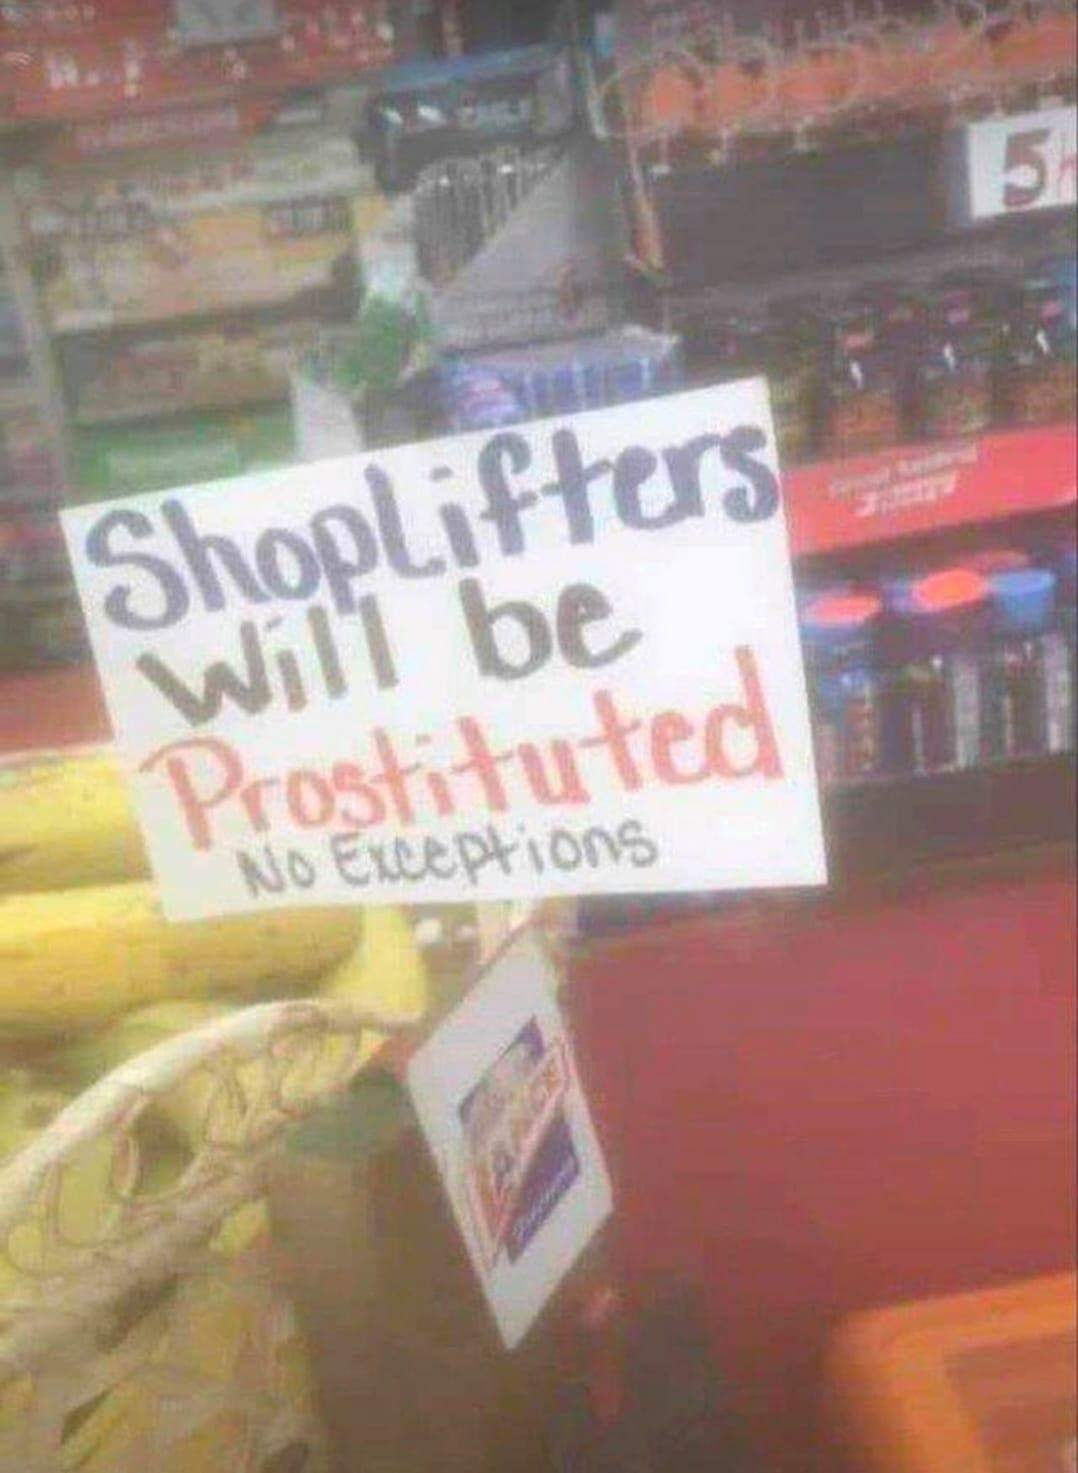 Shoplifters will be prostituted (Source: Farley Aguila/Facebook)